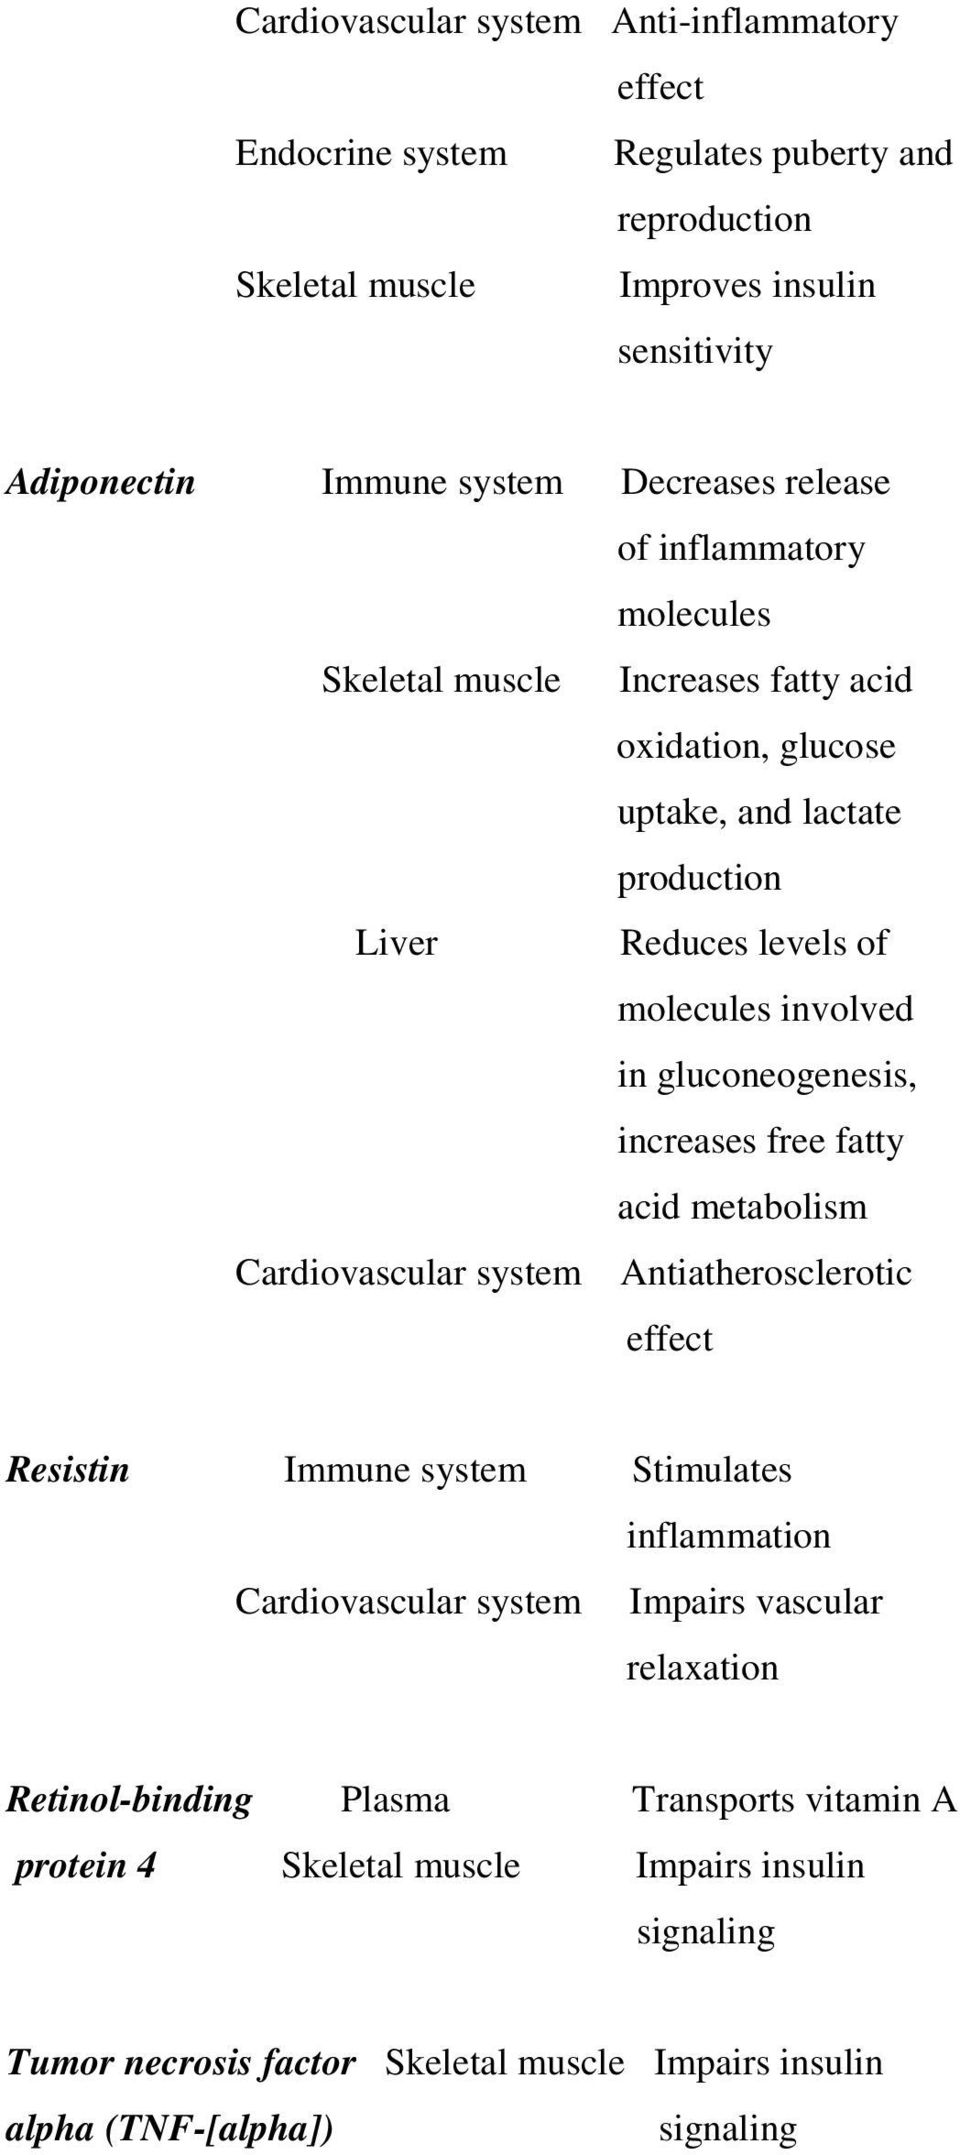 gluconeogenesis, increases free fatty acid metabolism Cardiovascular system Antiatherosclerotic effect Resistin Immune system Stimulates inflammation Cardiovascular system Impairs